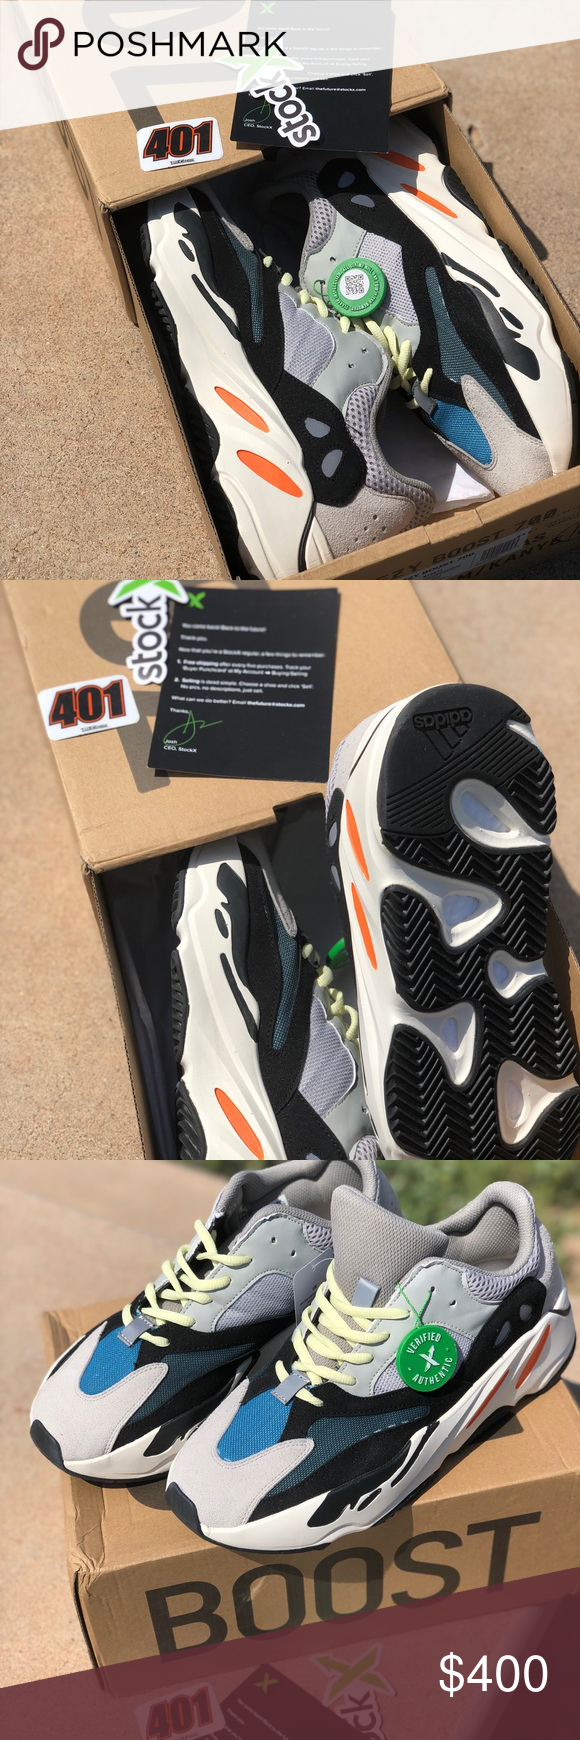 detailed look d9afb 067d7 Adidas Yeezy 700 Waverunner New , never used StockX ...